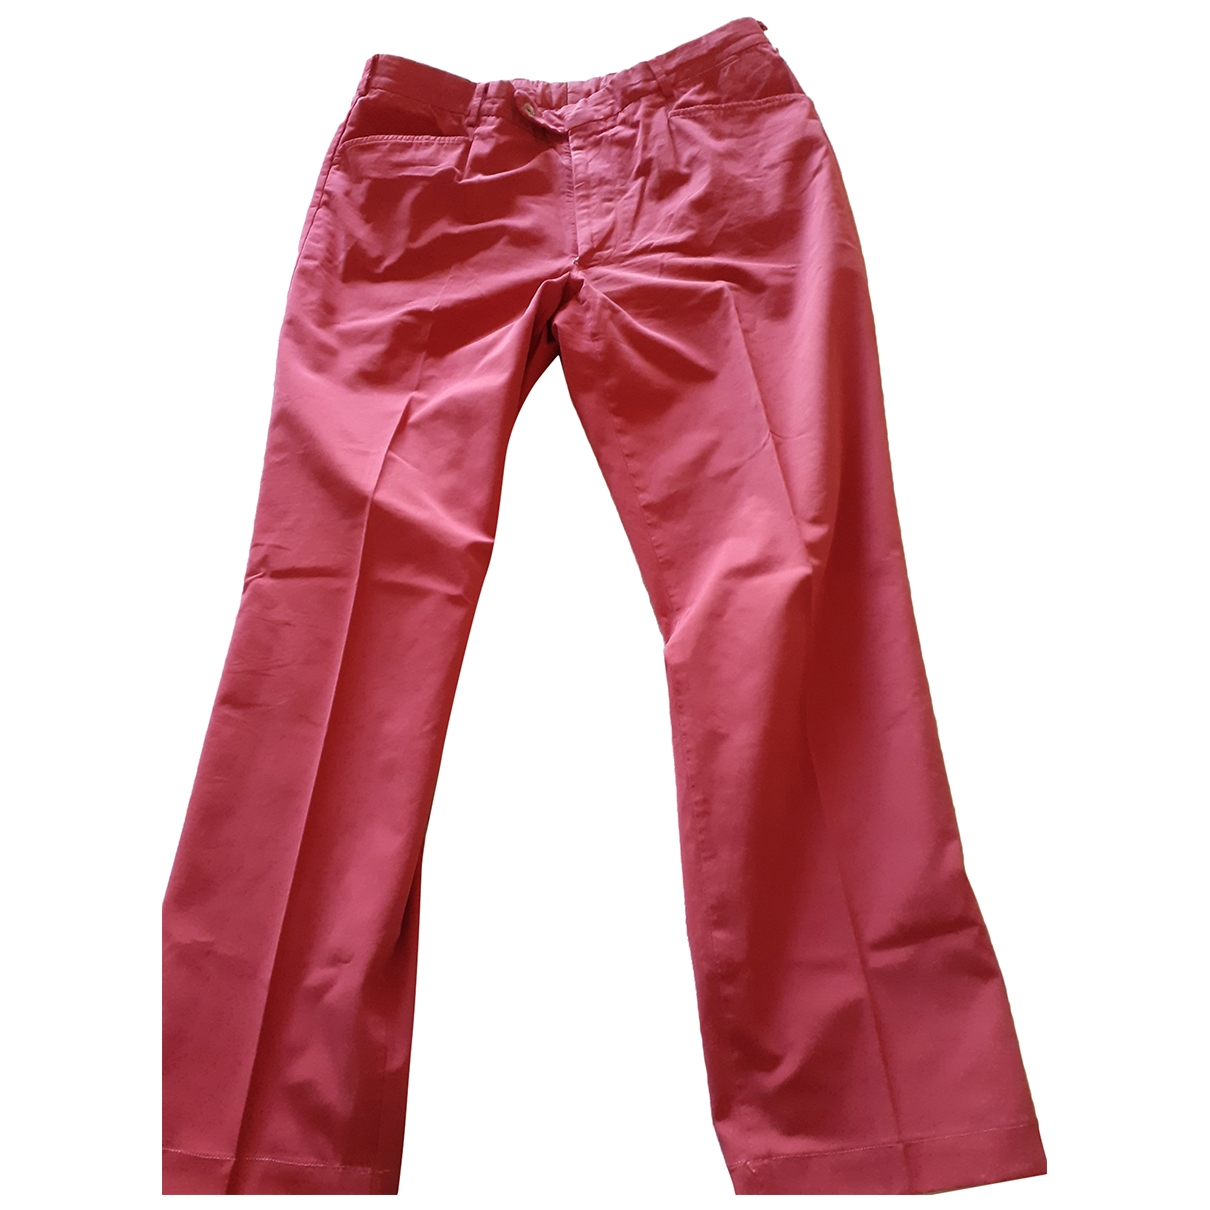 Burberry \N Red Cotton Trousers for Men XL International